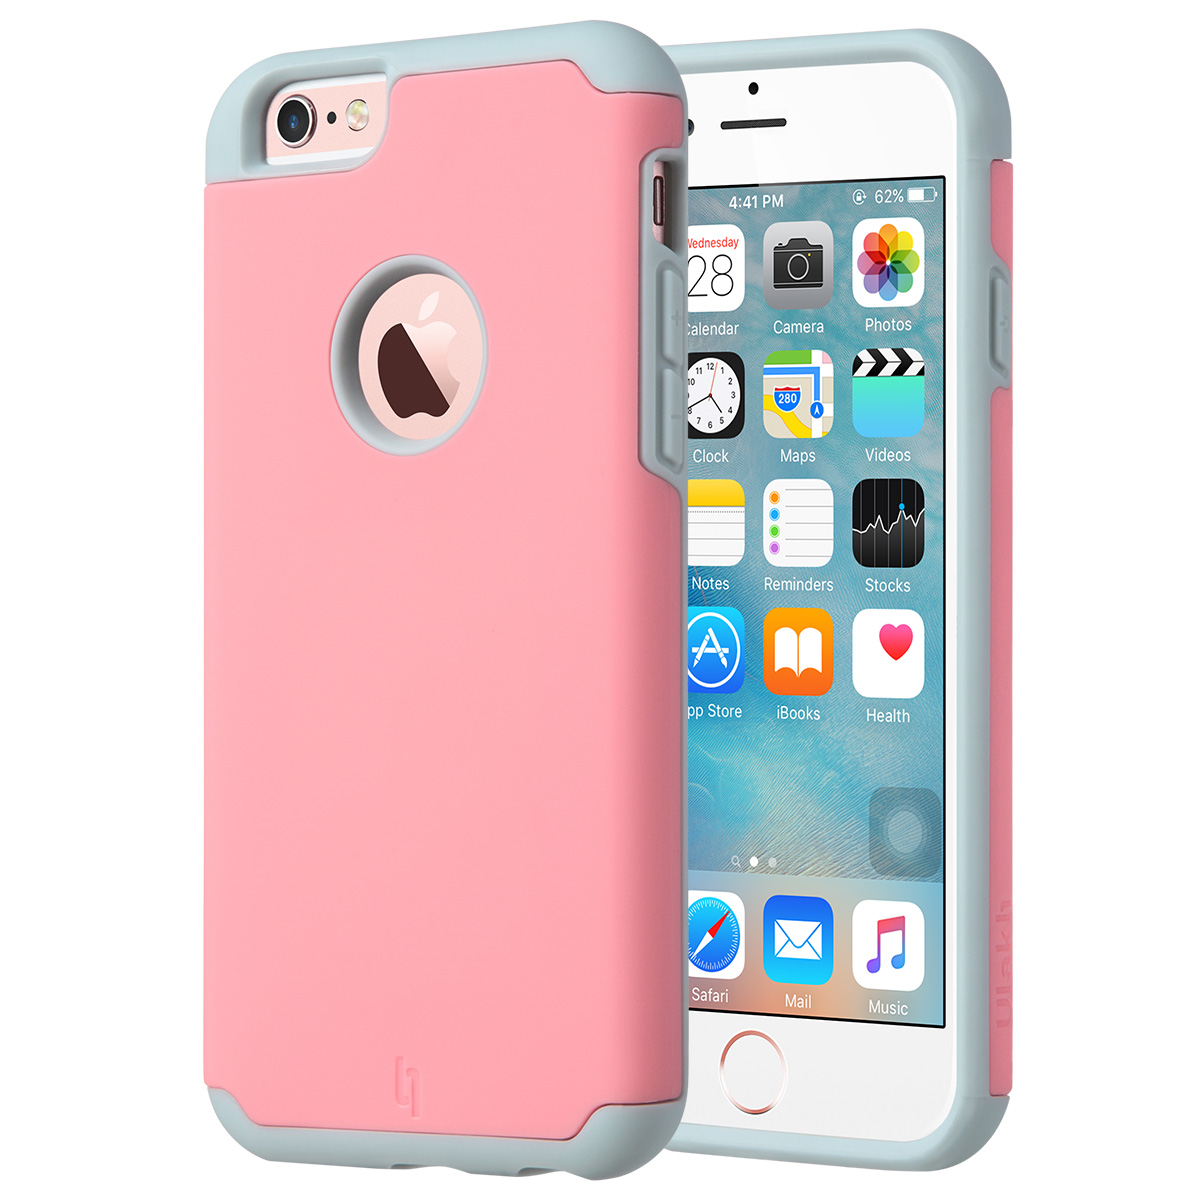 ULAK Shock Absorbent Hybrid PC & Silicone Case Bumper Cover for Apple iPhone 6s / 6 4.7 inch